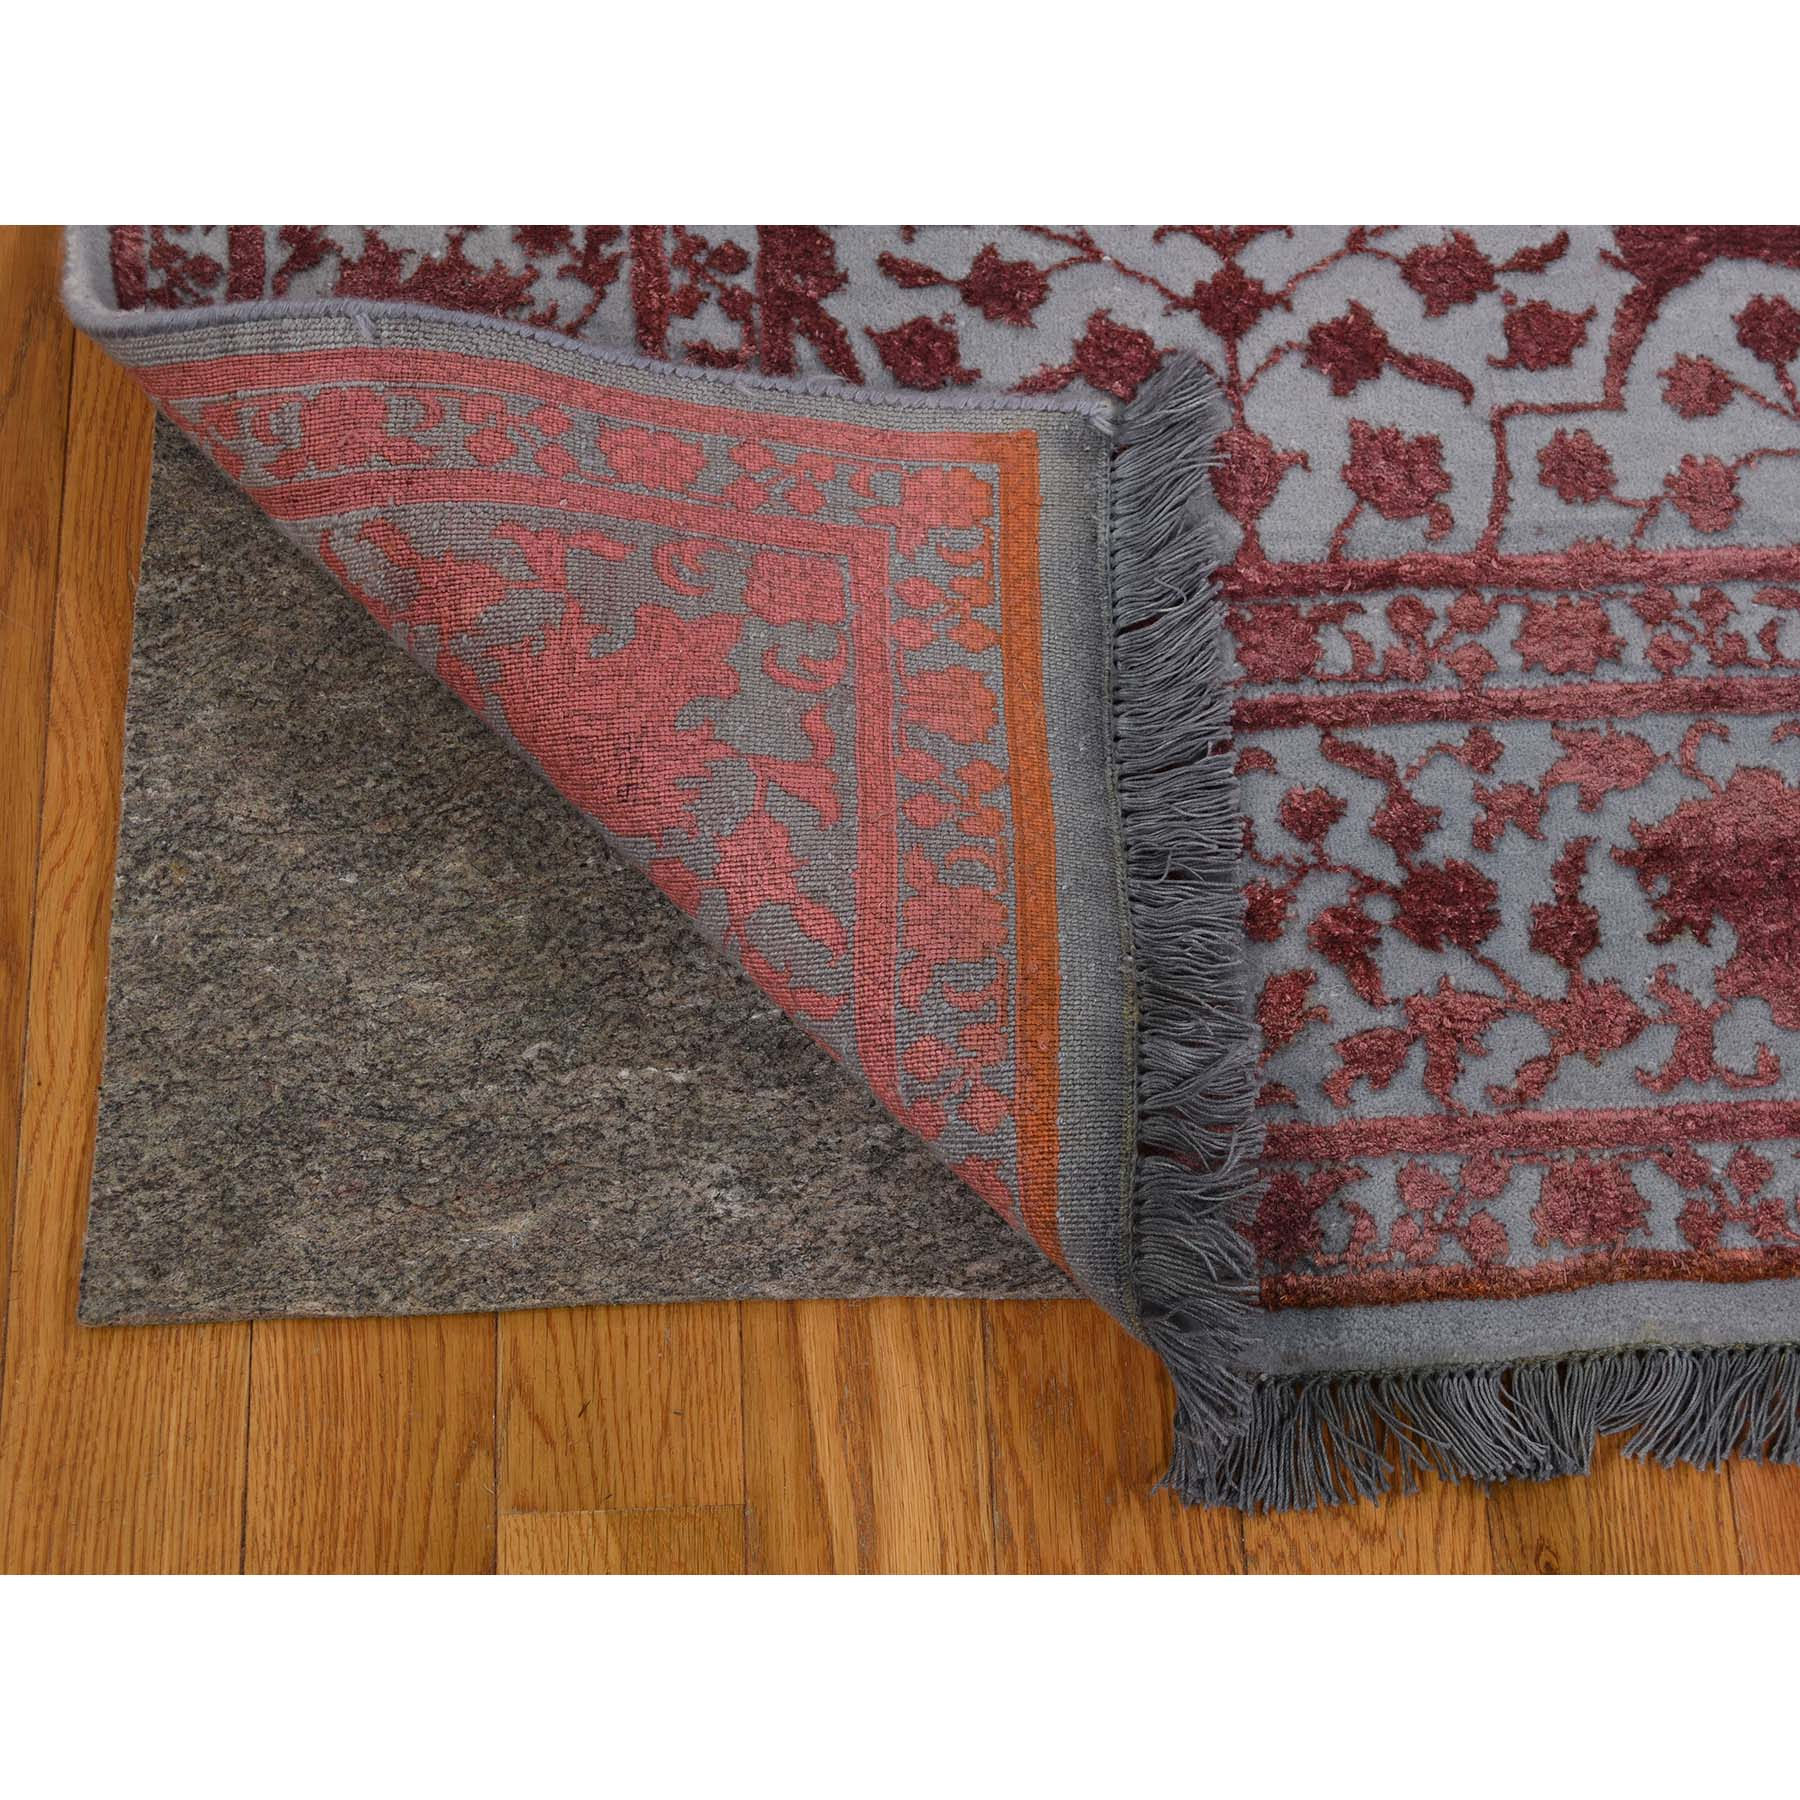 5-9 x9- Kashan Dense Weave Wool And Silk Hand-Knotted Pure Wool Rug